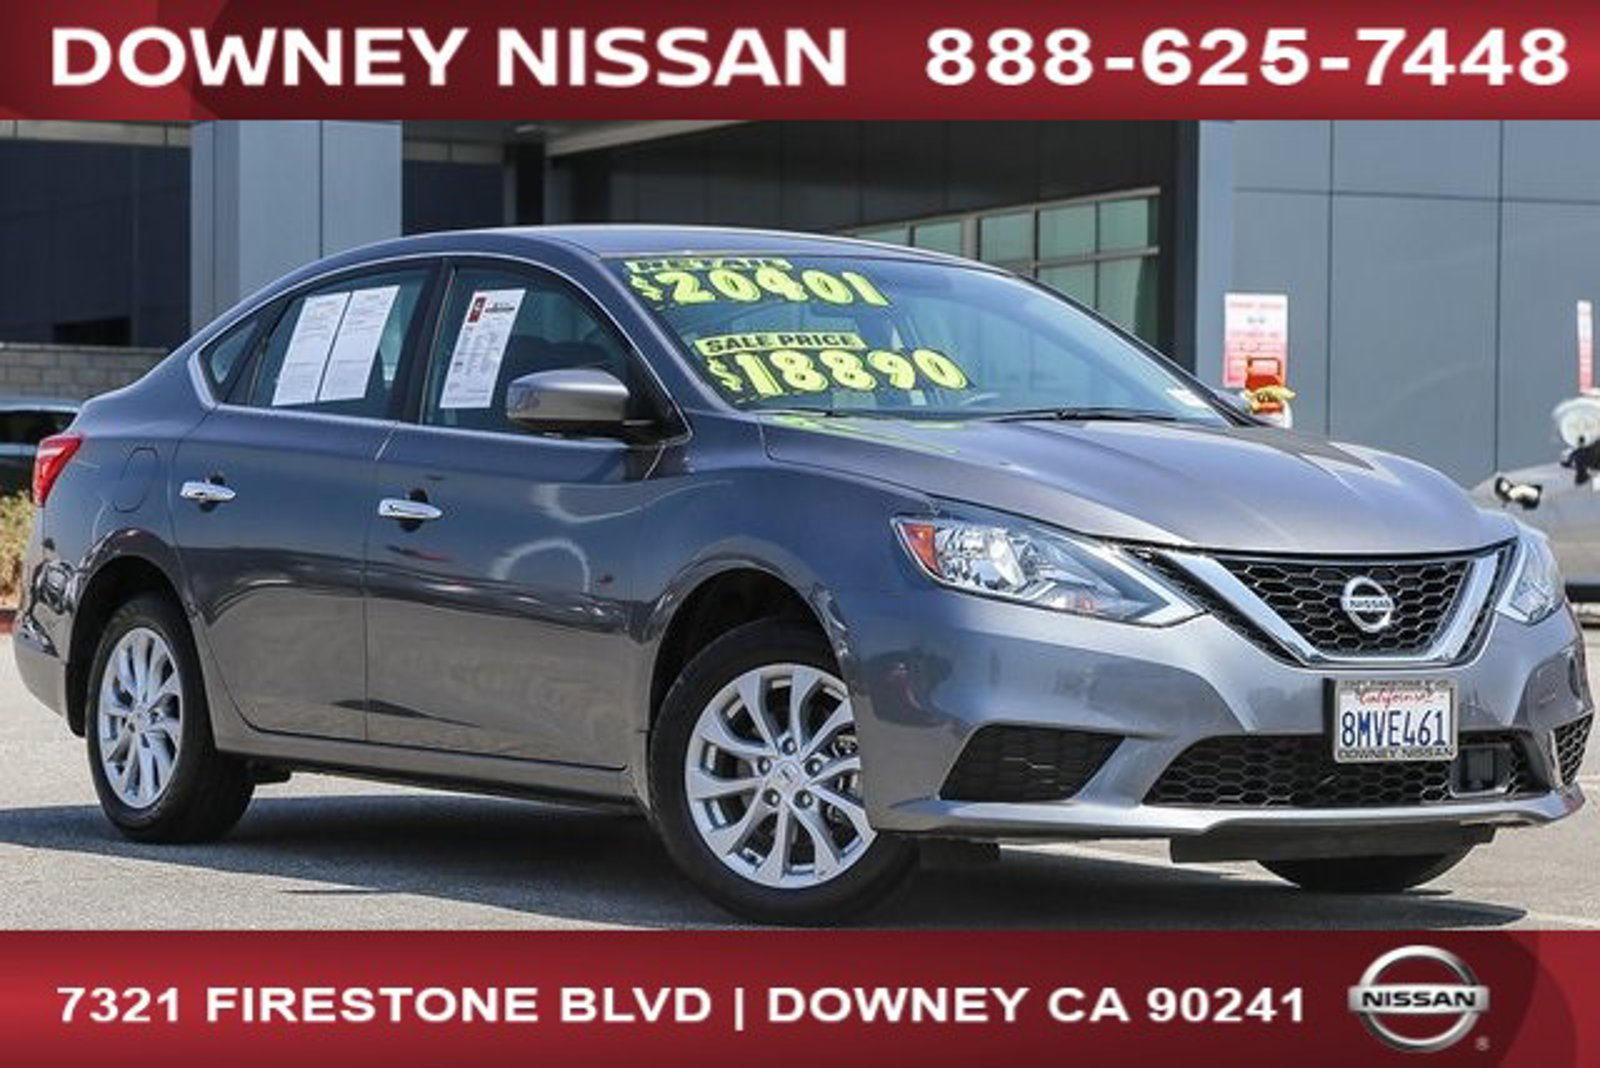 2019 Nissan Sentra SV SV CVT Regular Unleaded I-4 1.8 L/110 [11]